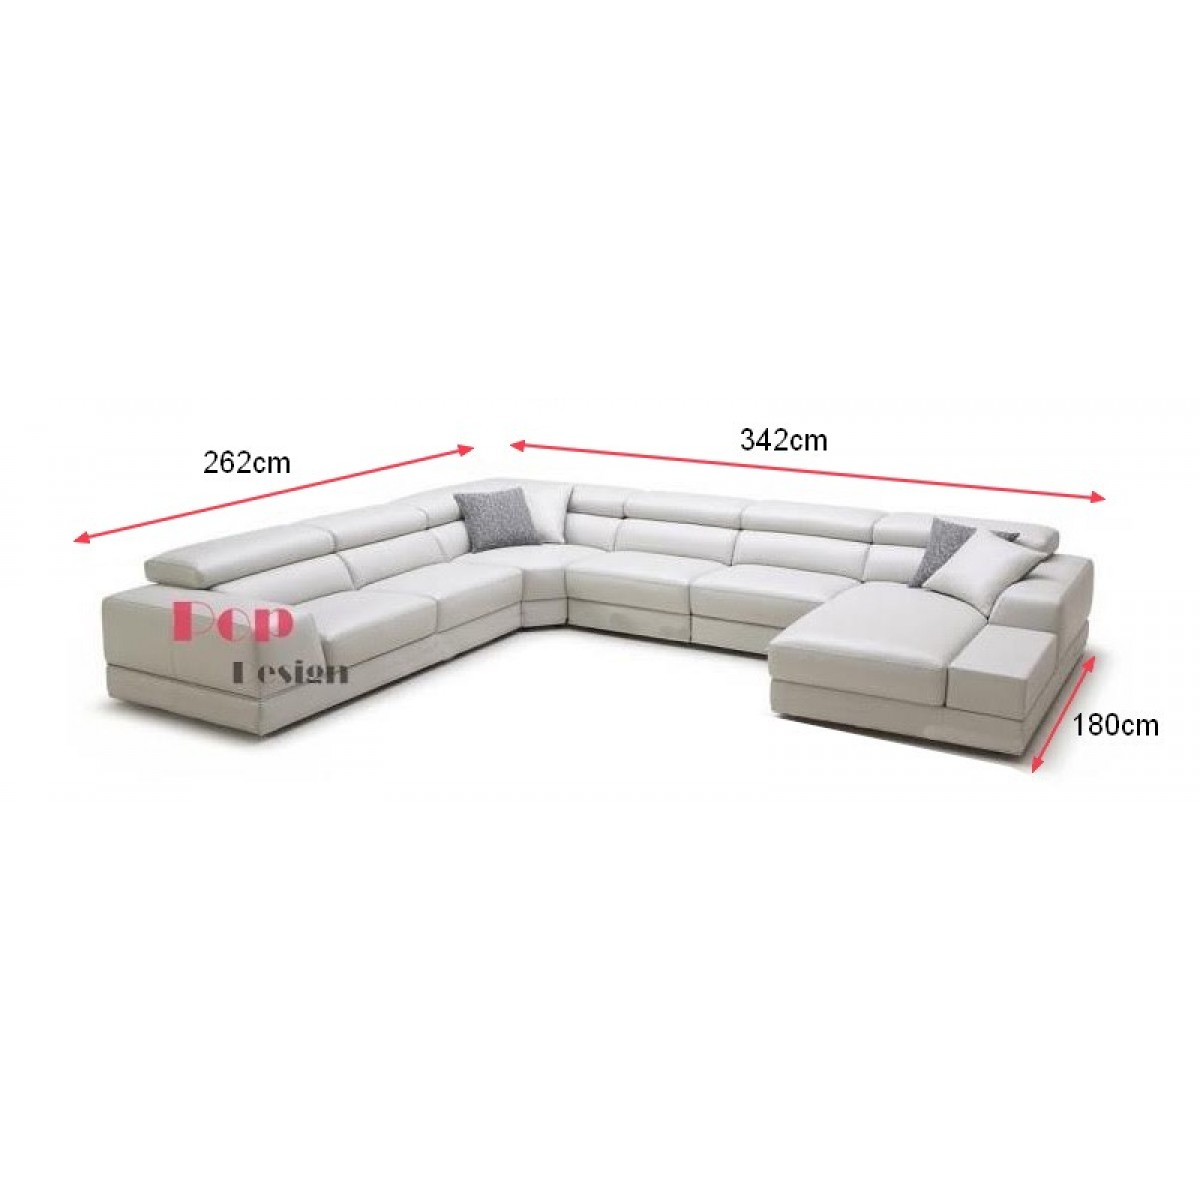 Canap d 39 angle panoramique relax en cuir v ritable palermo - Dessus de canape d angle ...